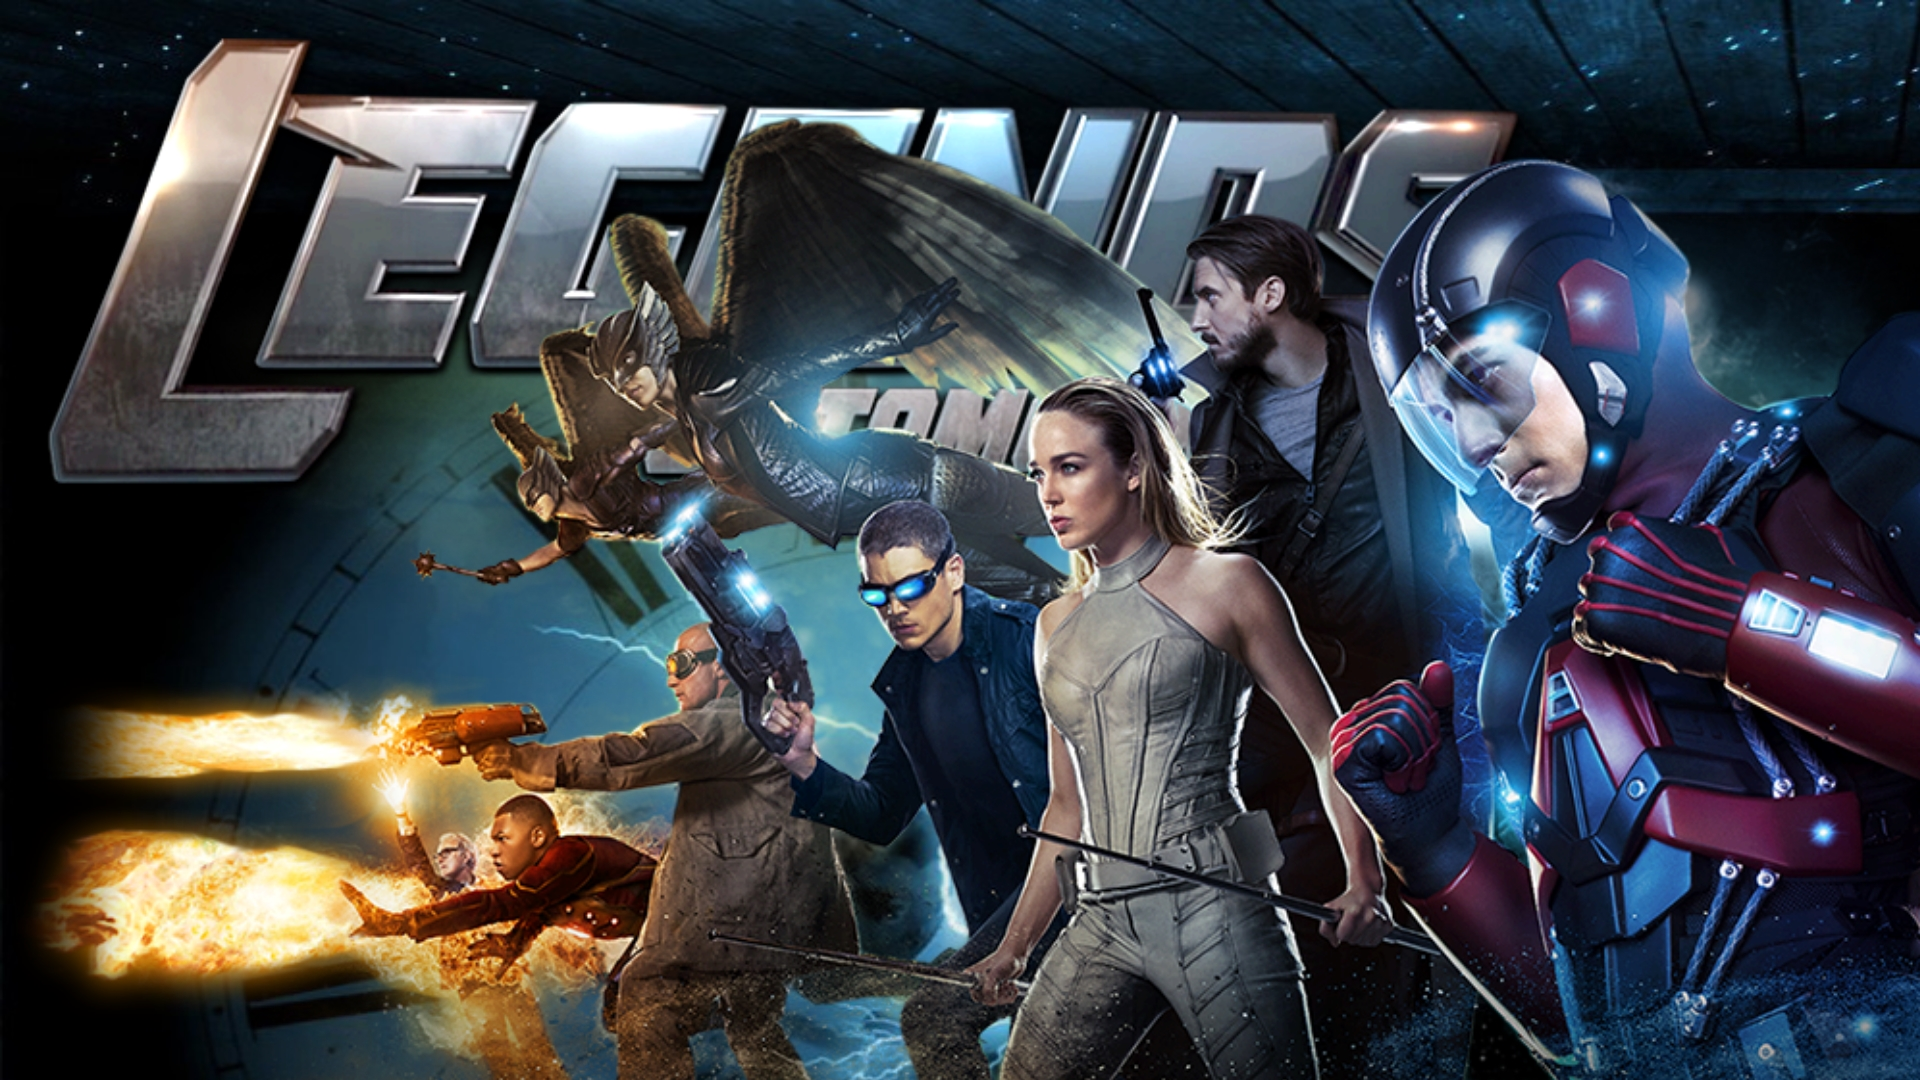 Dc S Legends Of Tomorrow Wallpaper And Background Image: Dc Legends Of Tomorrow Wallpapers 1920 X 1080